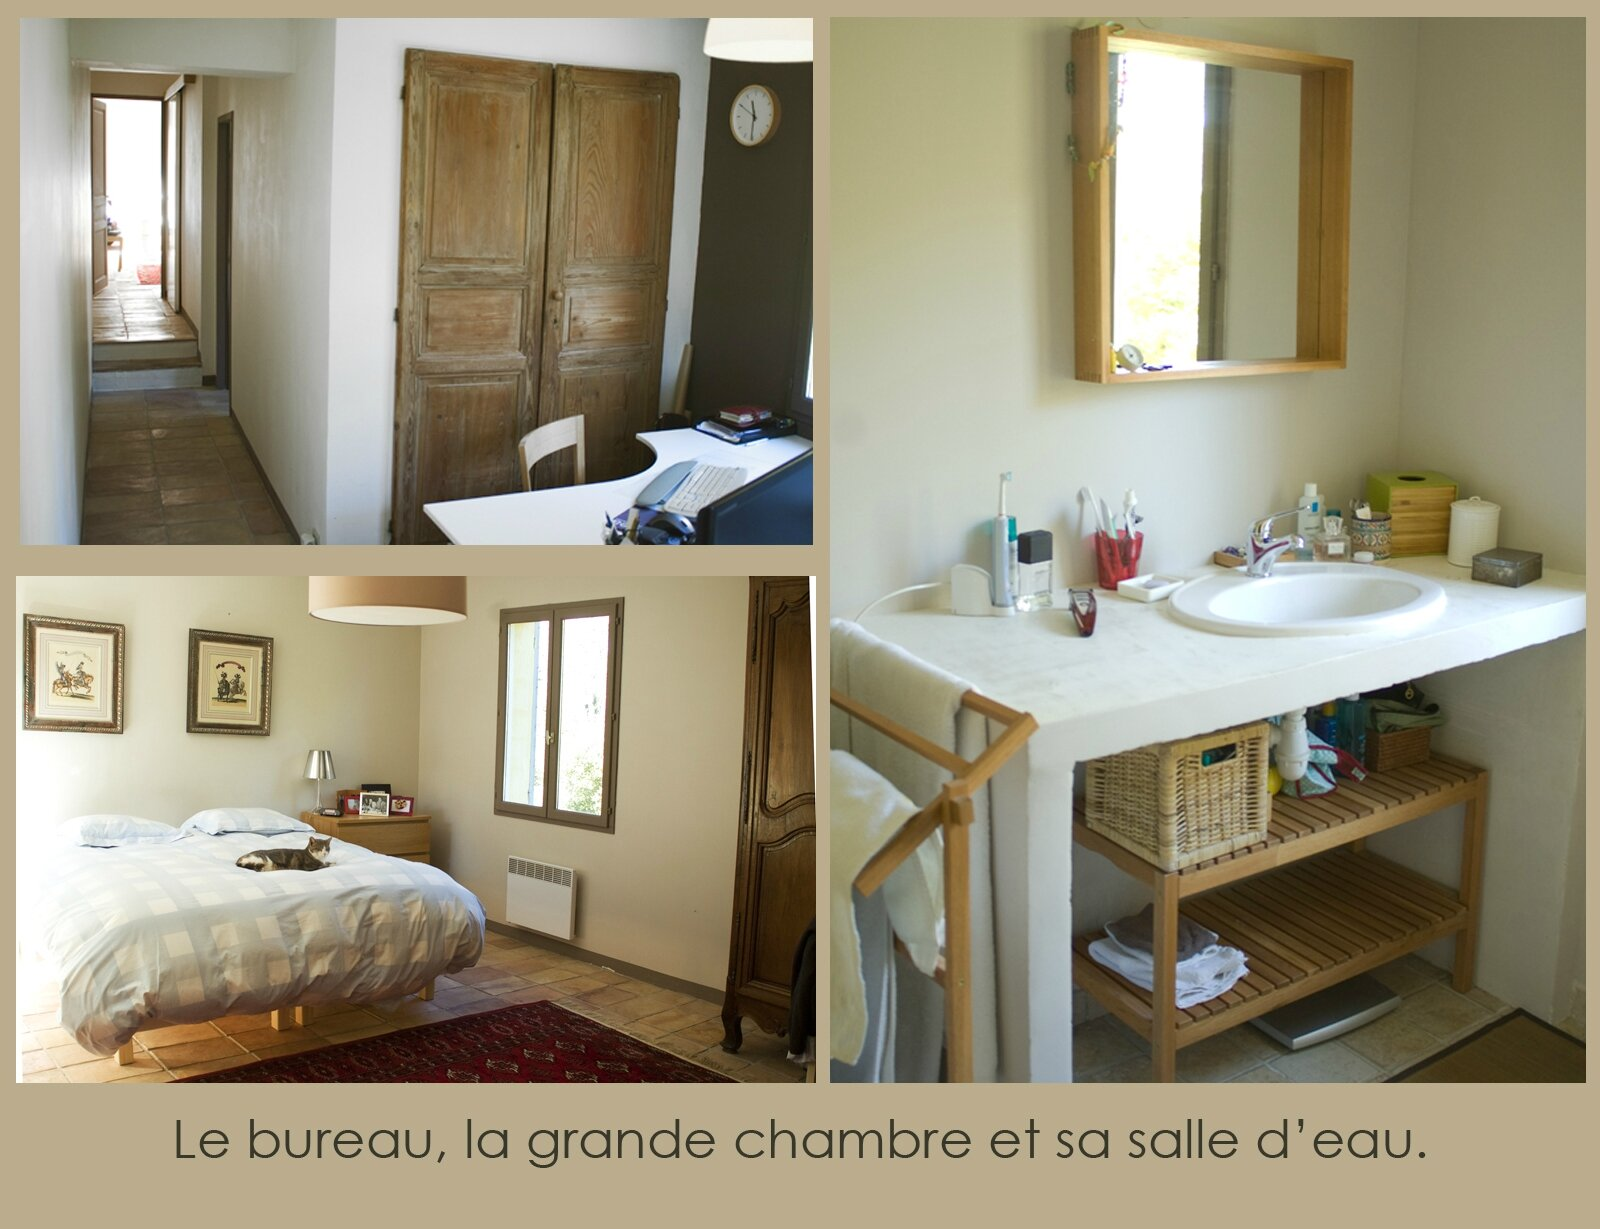 Suite parentale salle de bain dressing plan suite for Suite parentale dressing